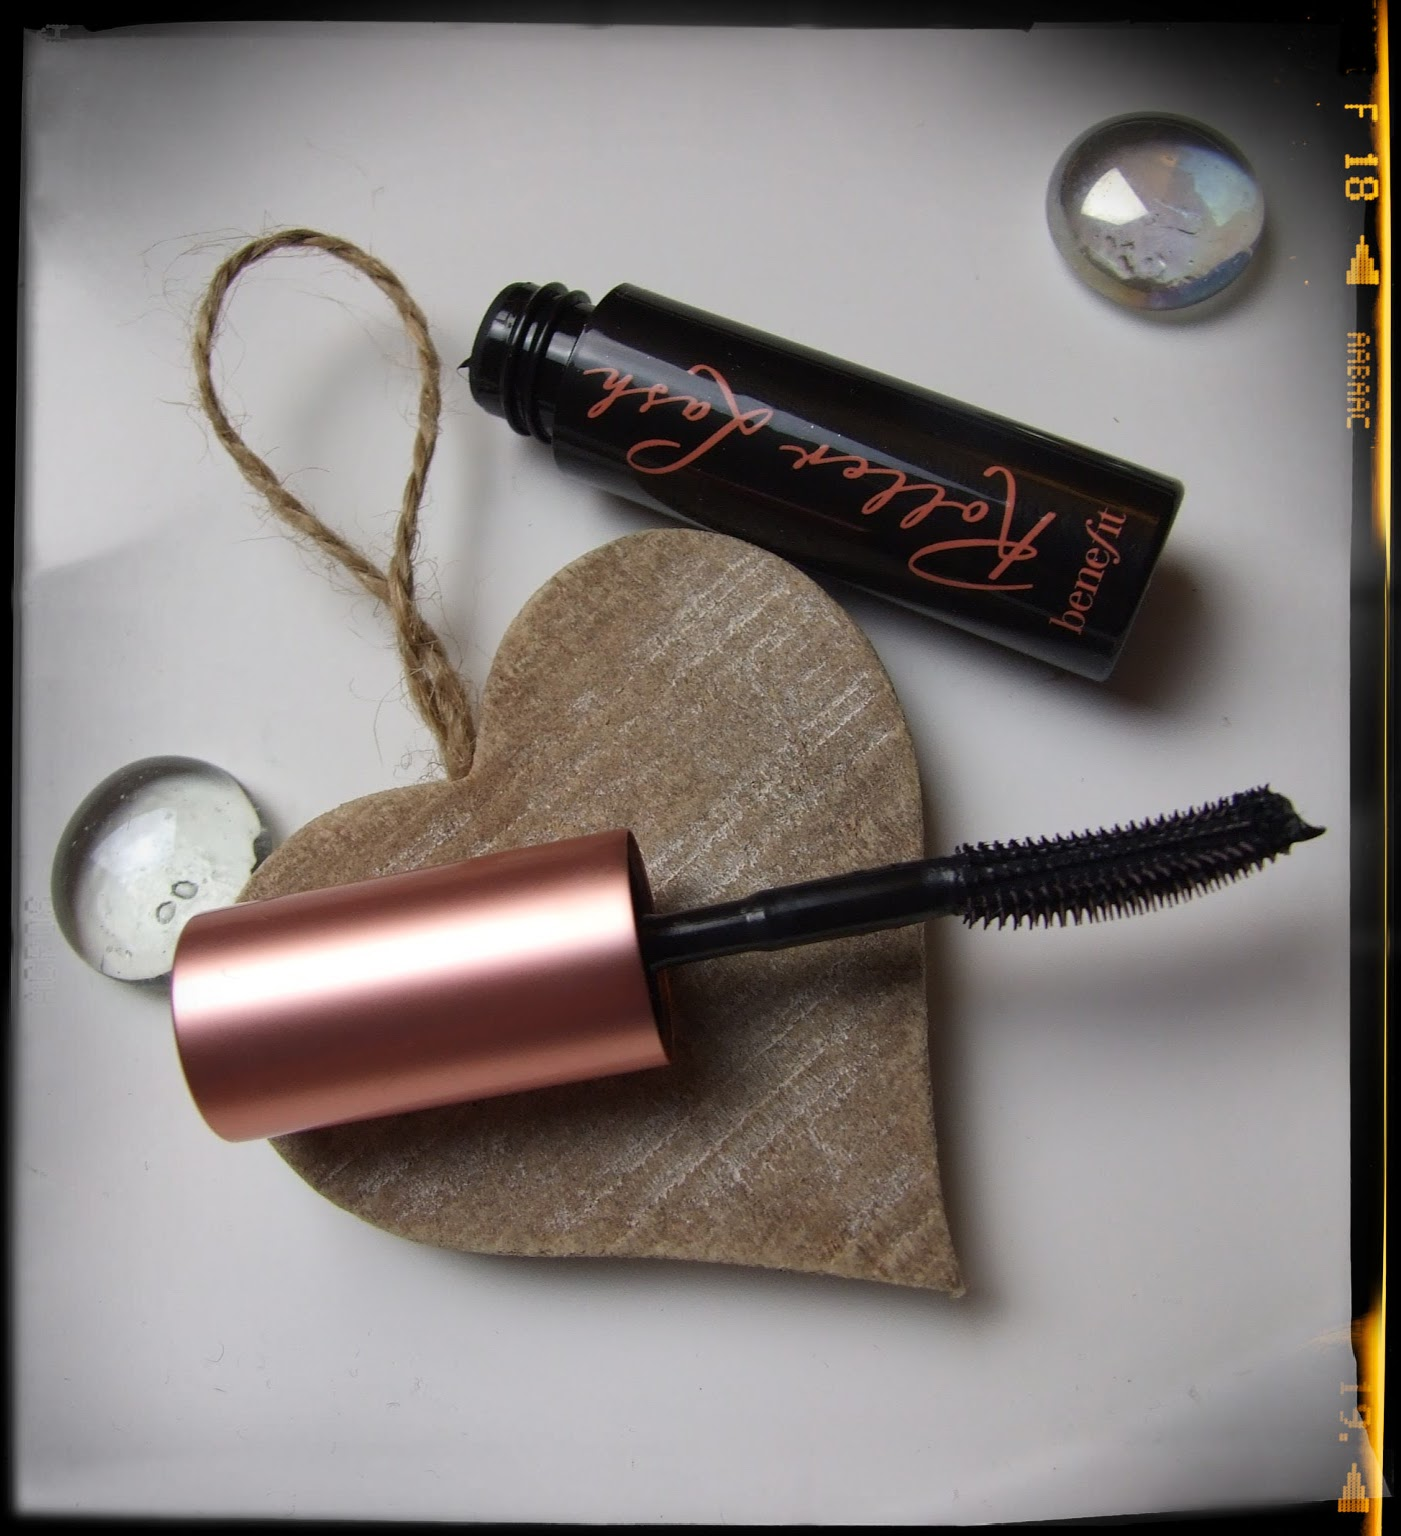 Benefit Roller lash mascara new